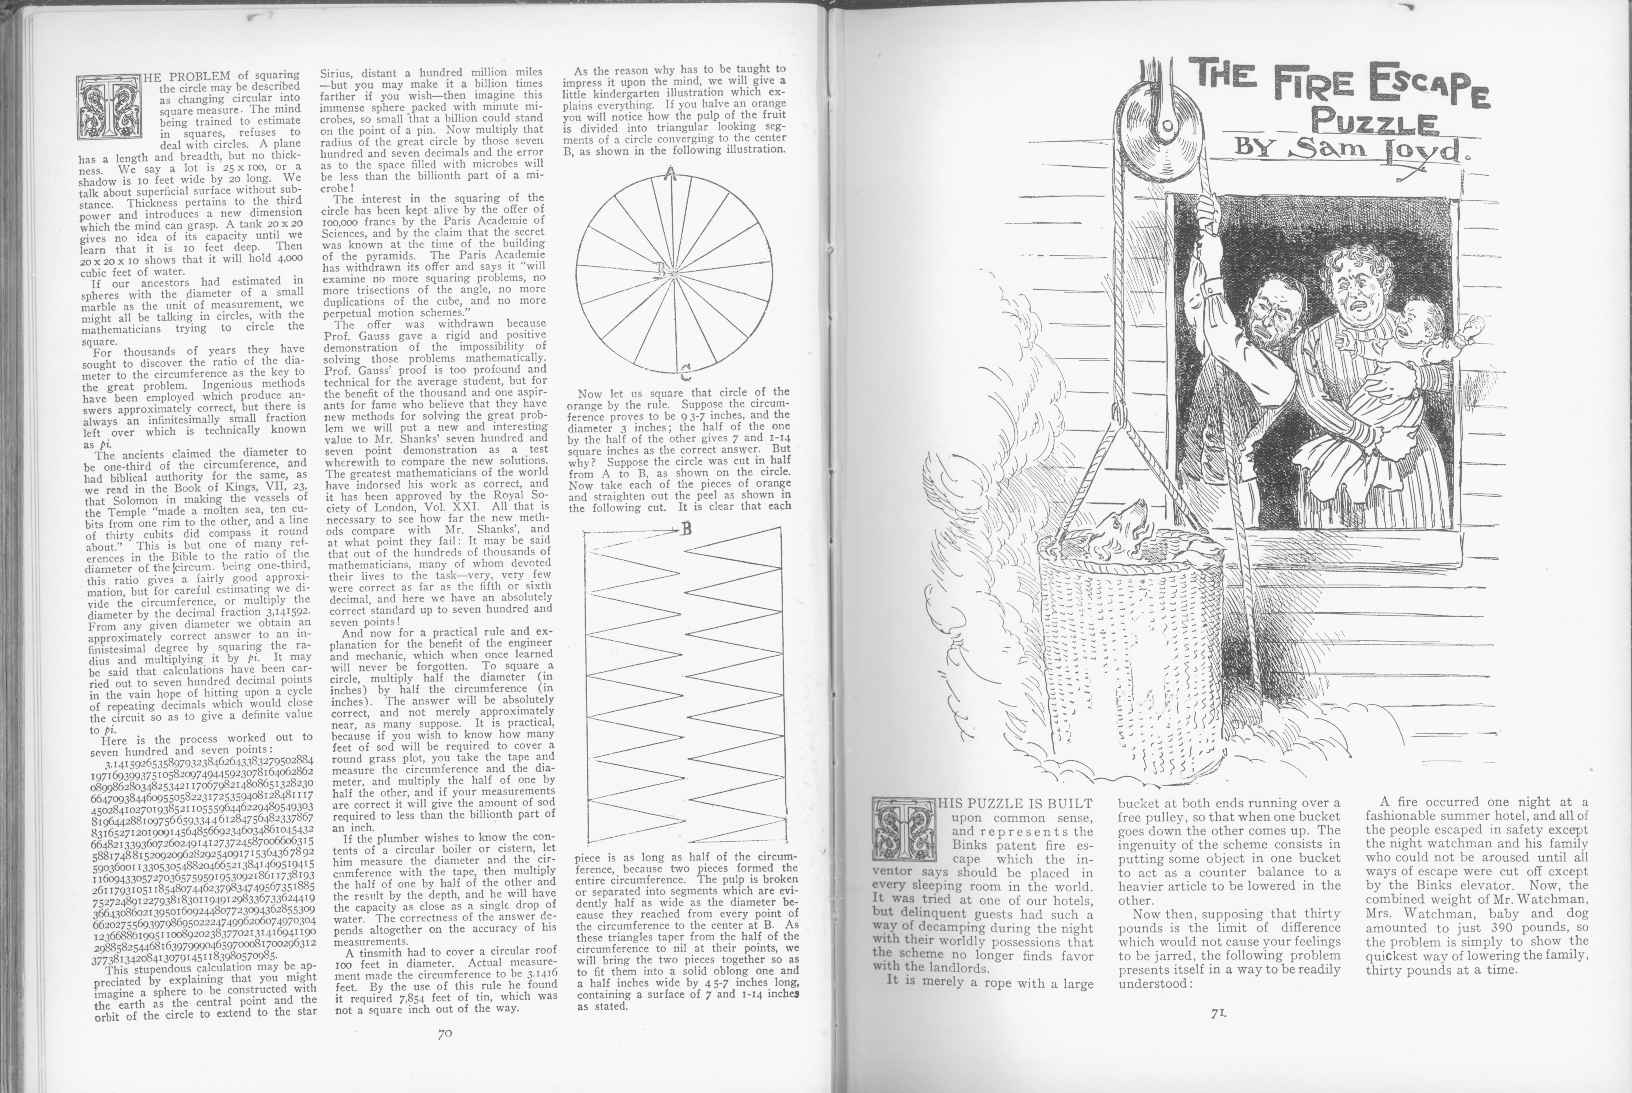 Sam Loyd - Cyclopedia of Puzzles - page 70-71